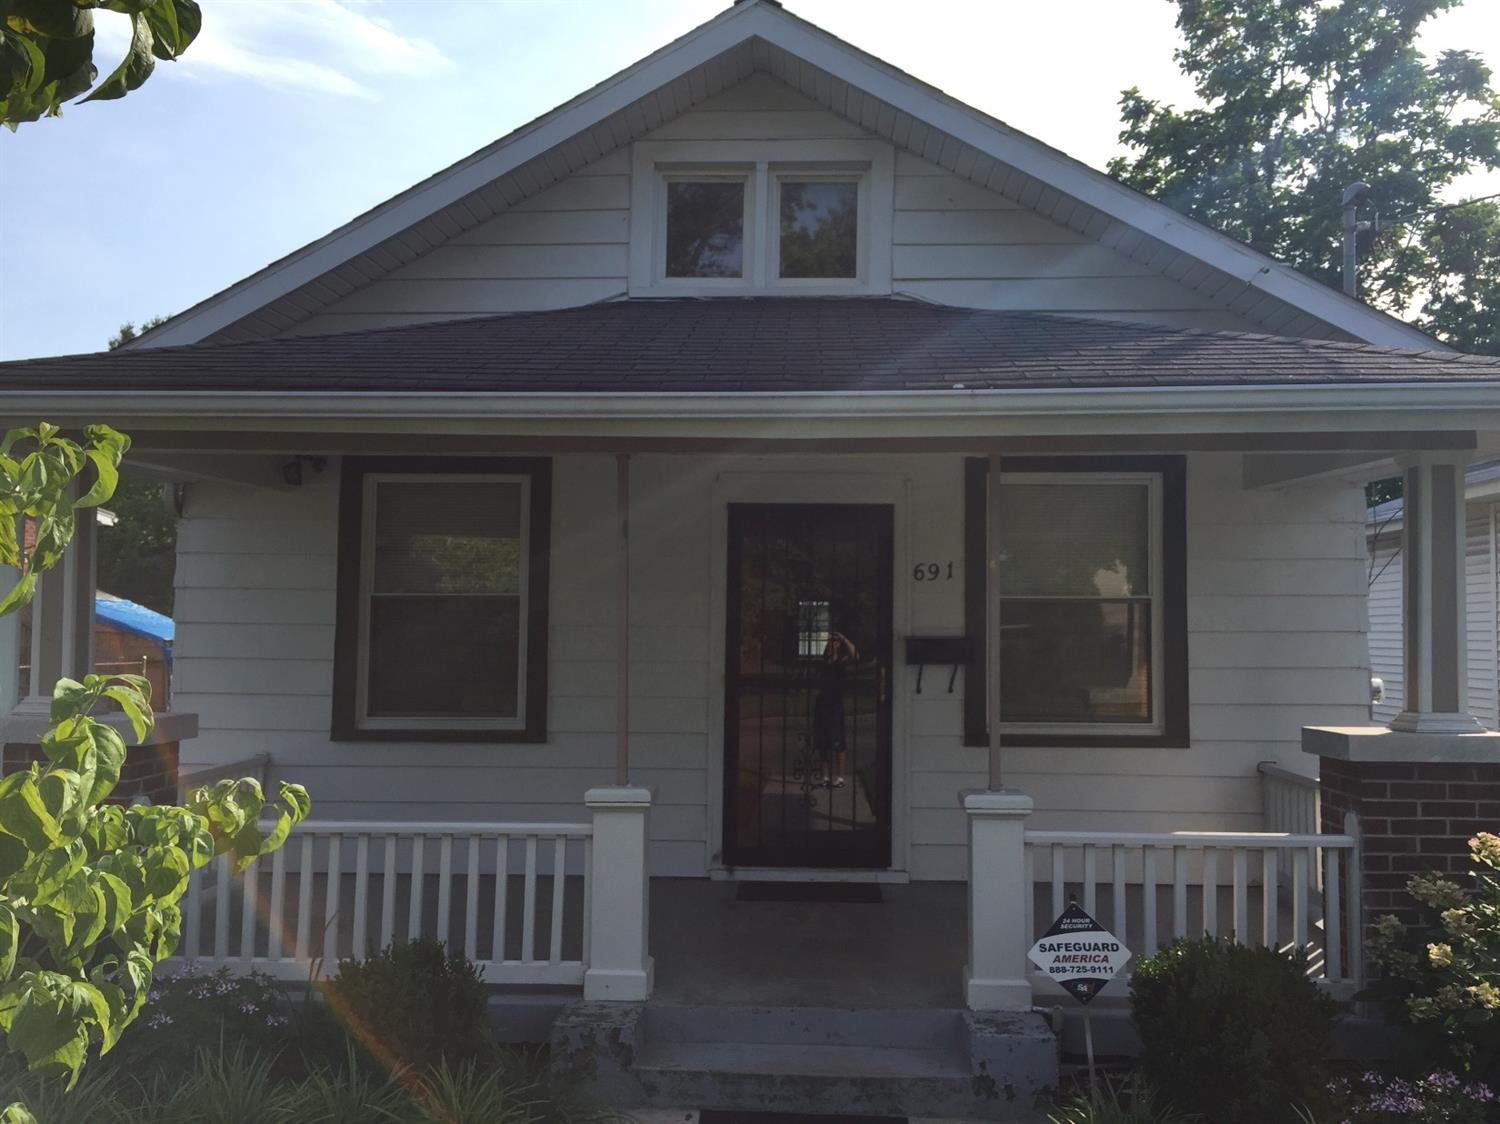 Beautifully%20updated%20and%20renovated%202%20bedroom,%201%20bath%20ranch%20home.%20%20Possible%203rd%20bedroom%20at%20back%20of%20house%20has%20closet%20space%20plus%20washer%20and%20dryer%20hook%20up.%20%20Partial%20unfinished%20basement%20and%201%20car%20detached%20garage.%20%20Per%20seller%20recent%20updates%20and%20renovations%20include%20furnace,%20air%20conditioning,%20water%20heater,%20completely%20updated%20bathroom%20and%20kitchen,%20laminate%20flooring%20as%20well%20as%20original%20hardwood,%20PEX%20plumbing,%20electric,%20LED%20lighting%20throughout,%20paint,%20electric%20garage%20door,%20double%20sheet%20rock%20drywall,%20and%20insulation.%20%20Centrally%20located%20in%20Lexington%20with%20easy%20access%20to%20downtown,%20New%20Circle%20Road,%20and%20Interstate%2075/64,%20Frankfort,%20Georgetown,%20and%20Toyota.%20%20Perfect%20for%20first%20time%20home%20buyer%20and/or%20Toyota%20employee.%20%203%%20Down%20Payment%20Assistance,%20up%20to%20$3,600%20is%20available%20for%20this%20home%20through%20Fifth%20Third%20Bank.%20%20Please%20contact%20Rick%20Davies%20at%20629-3885%20for%20specific%20details.